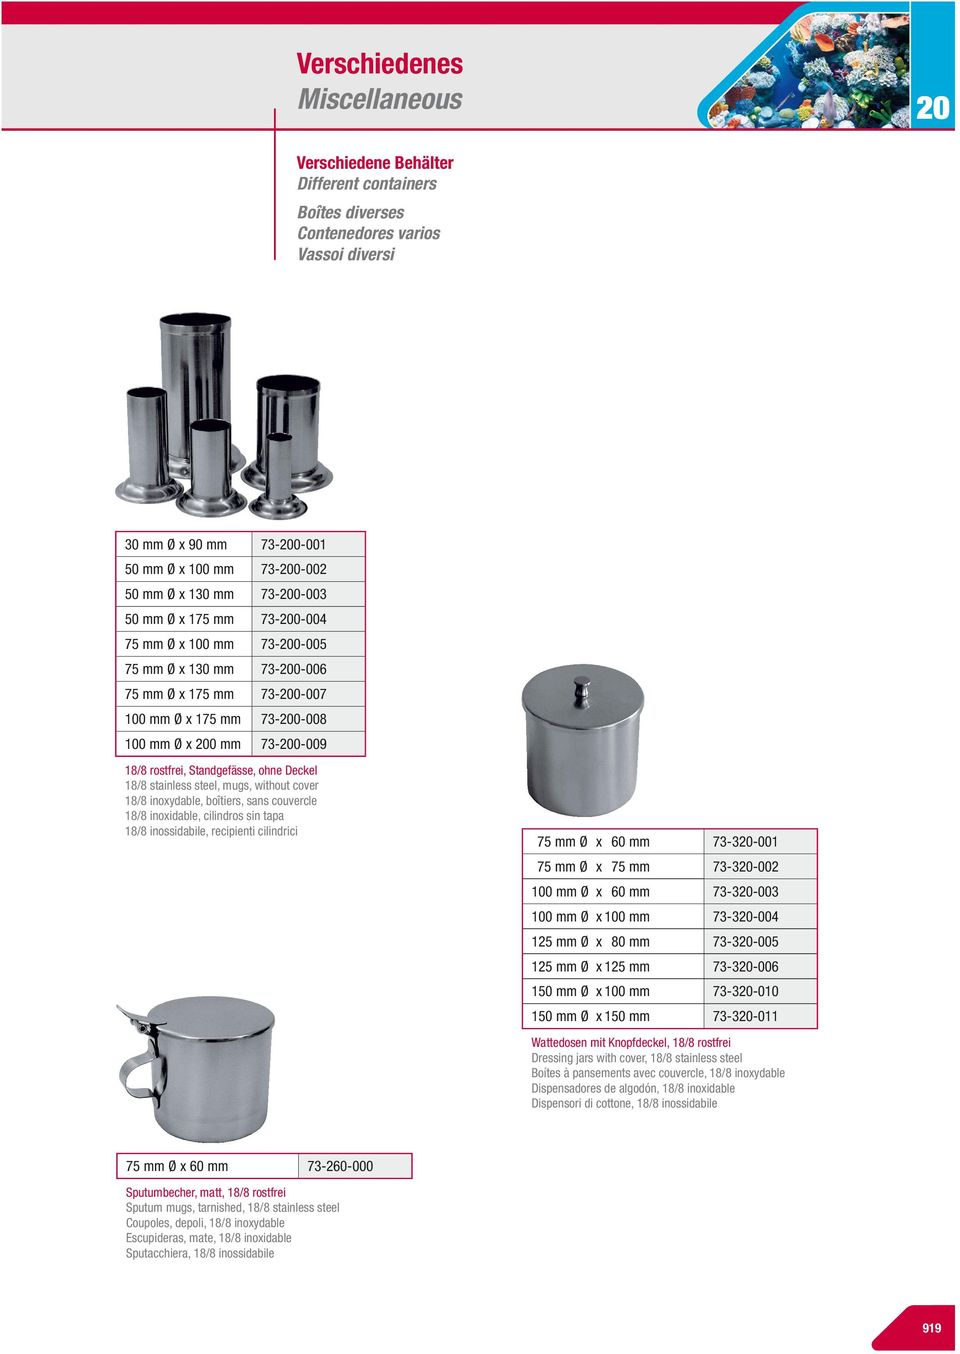 Deckel 18/8 stainless steel, mugs, without cover 18/8 inoxydable, boîtiers, sans couvercle 18/8 inoxidable, cilindros sin tapa 18/8 inossidabile, recipienti cilindrici 75 mm Ø x 60 mm 73-320-001 75